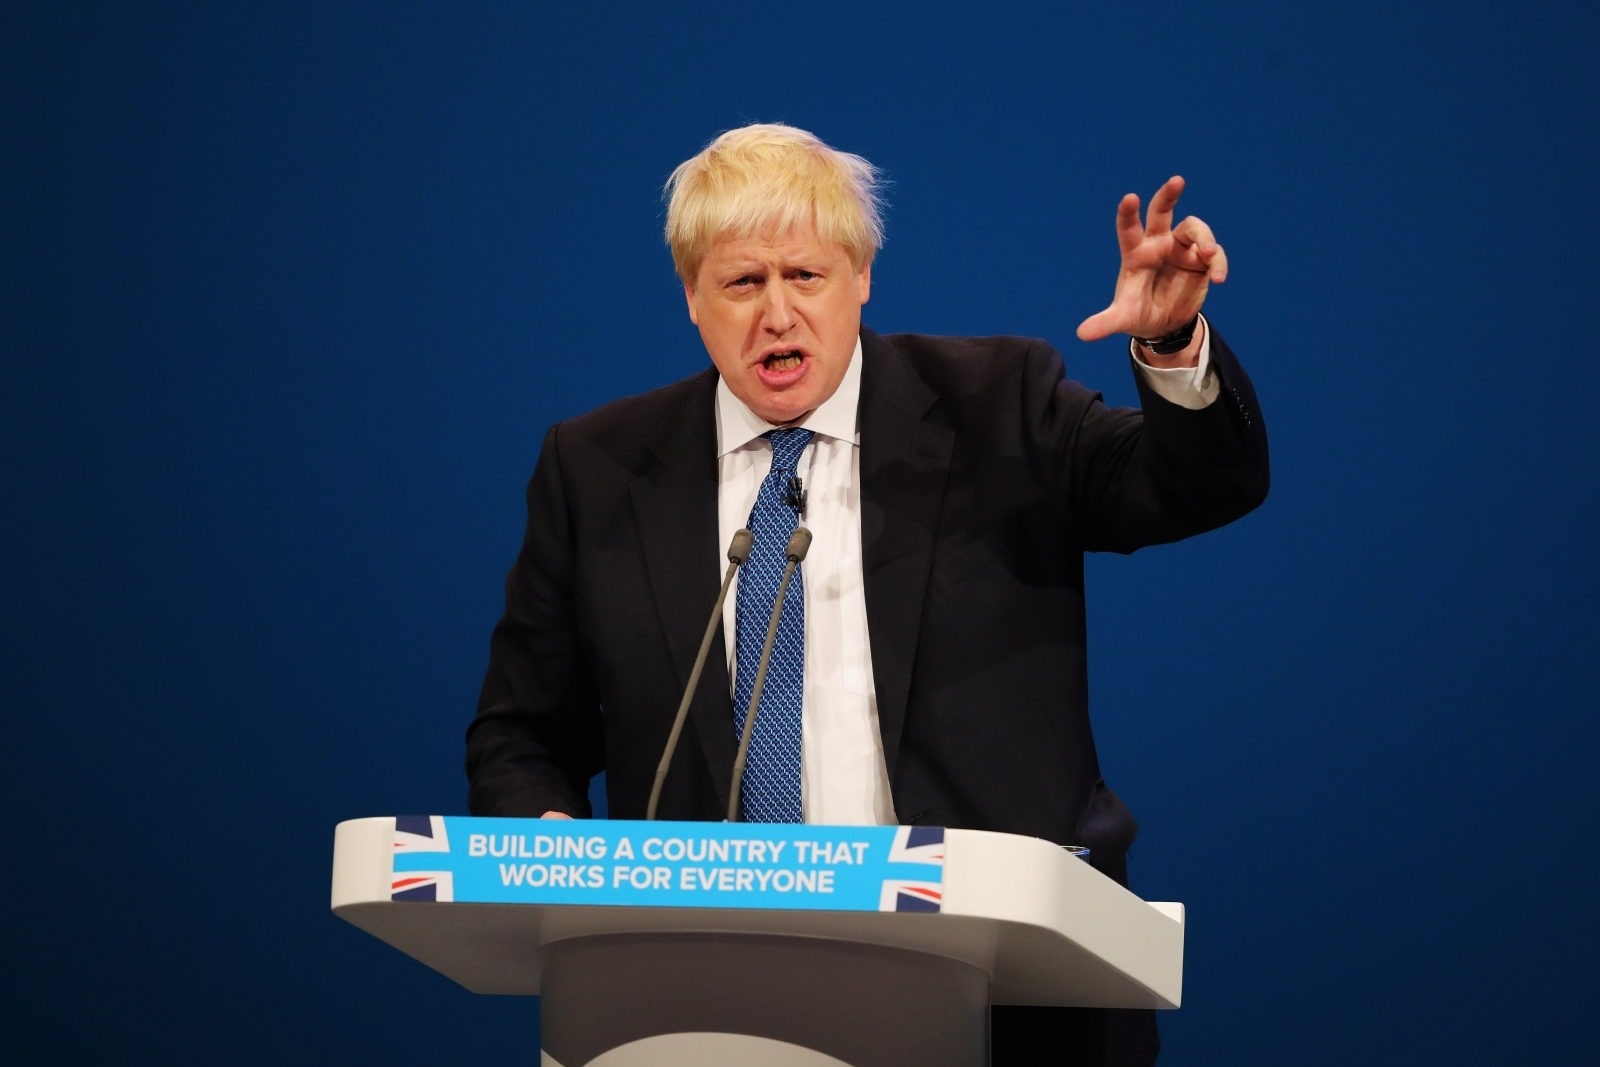 Boris Johnson Conservative party conference speech